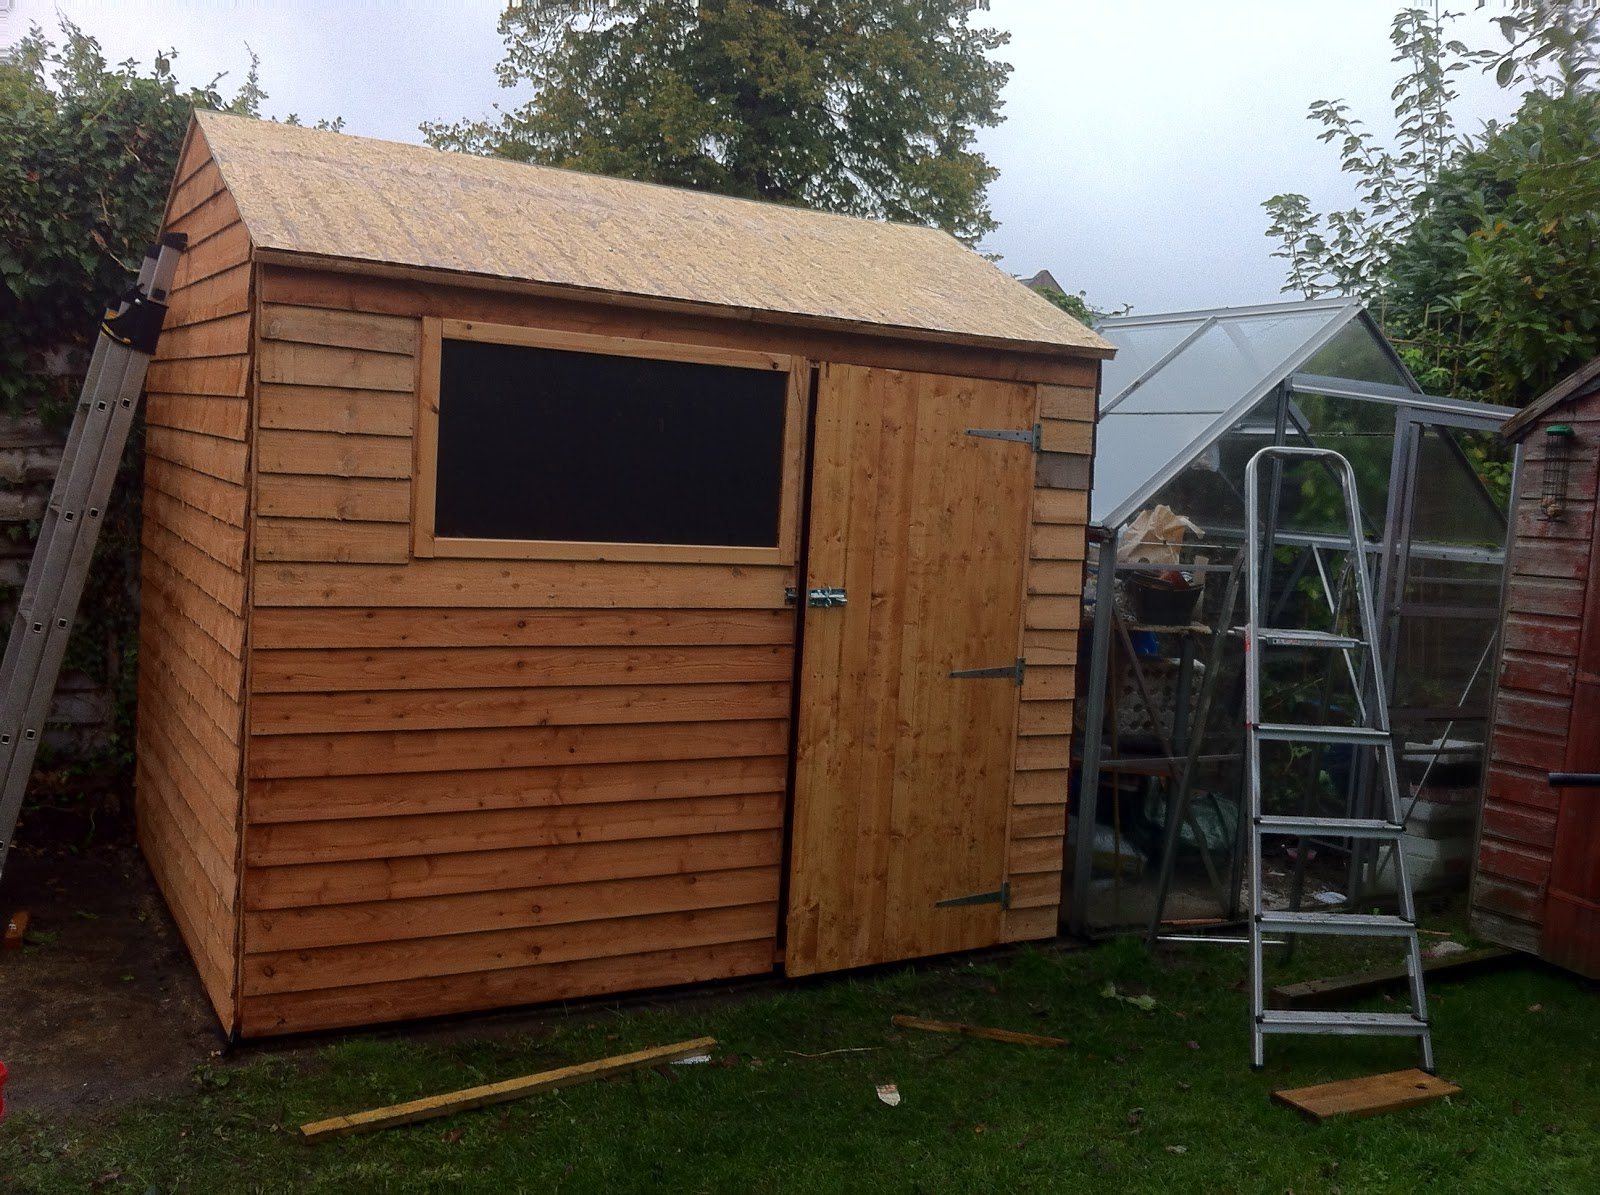 Donn small lawn mower shed 8x10x12x14x16x18x20x22x24 for Small lawnmower shed